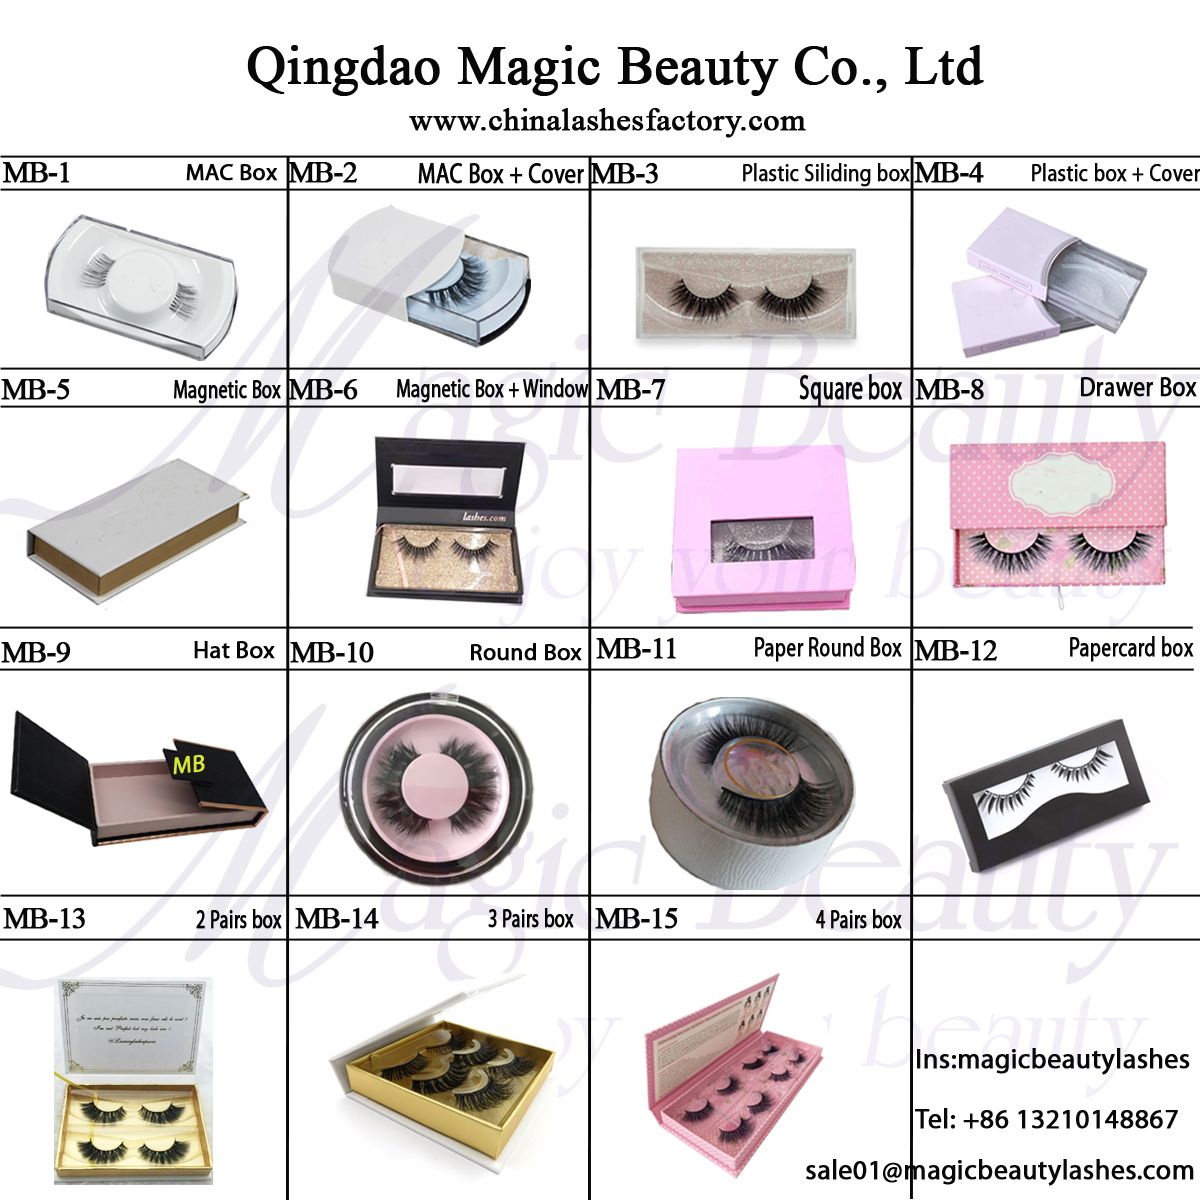 7a8ec81d258 Private Lable Lashes package with brand name-Qingdao Magic Beauty Co., Ltd  WhatsApp:+86 13210148867 Email:sale01@magicbeautylashes.com ...